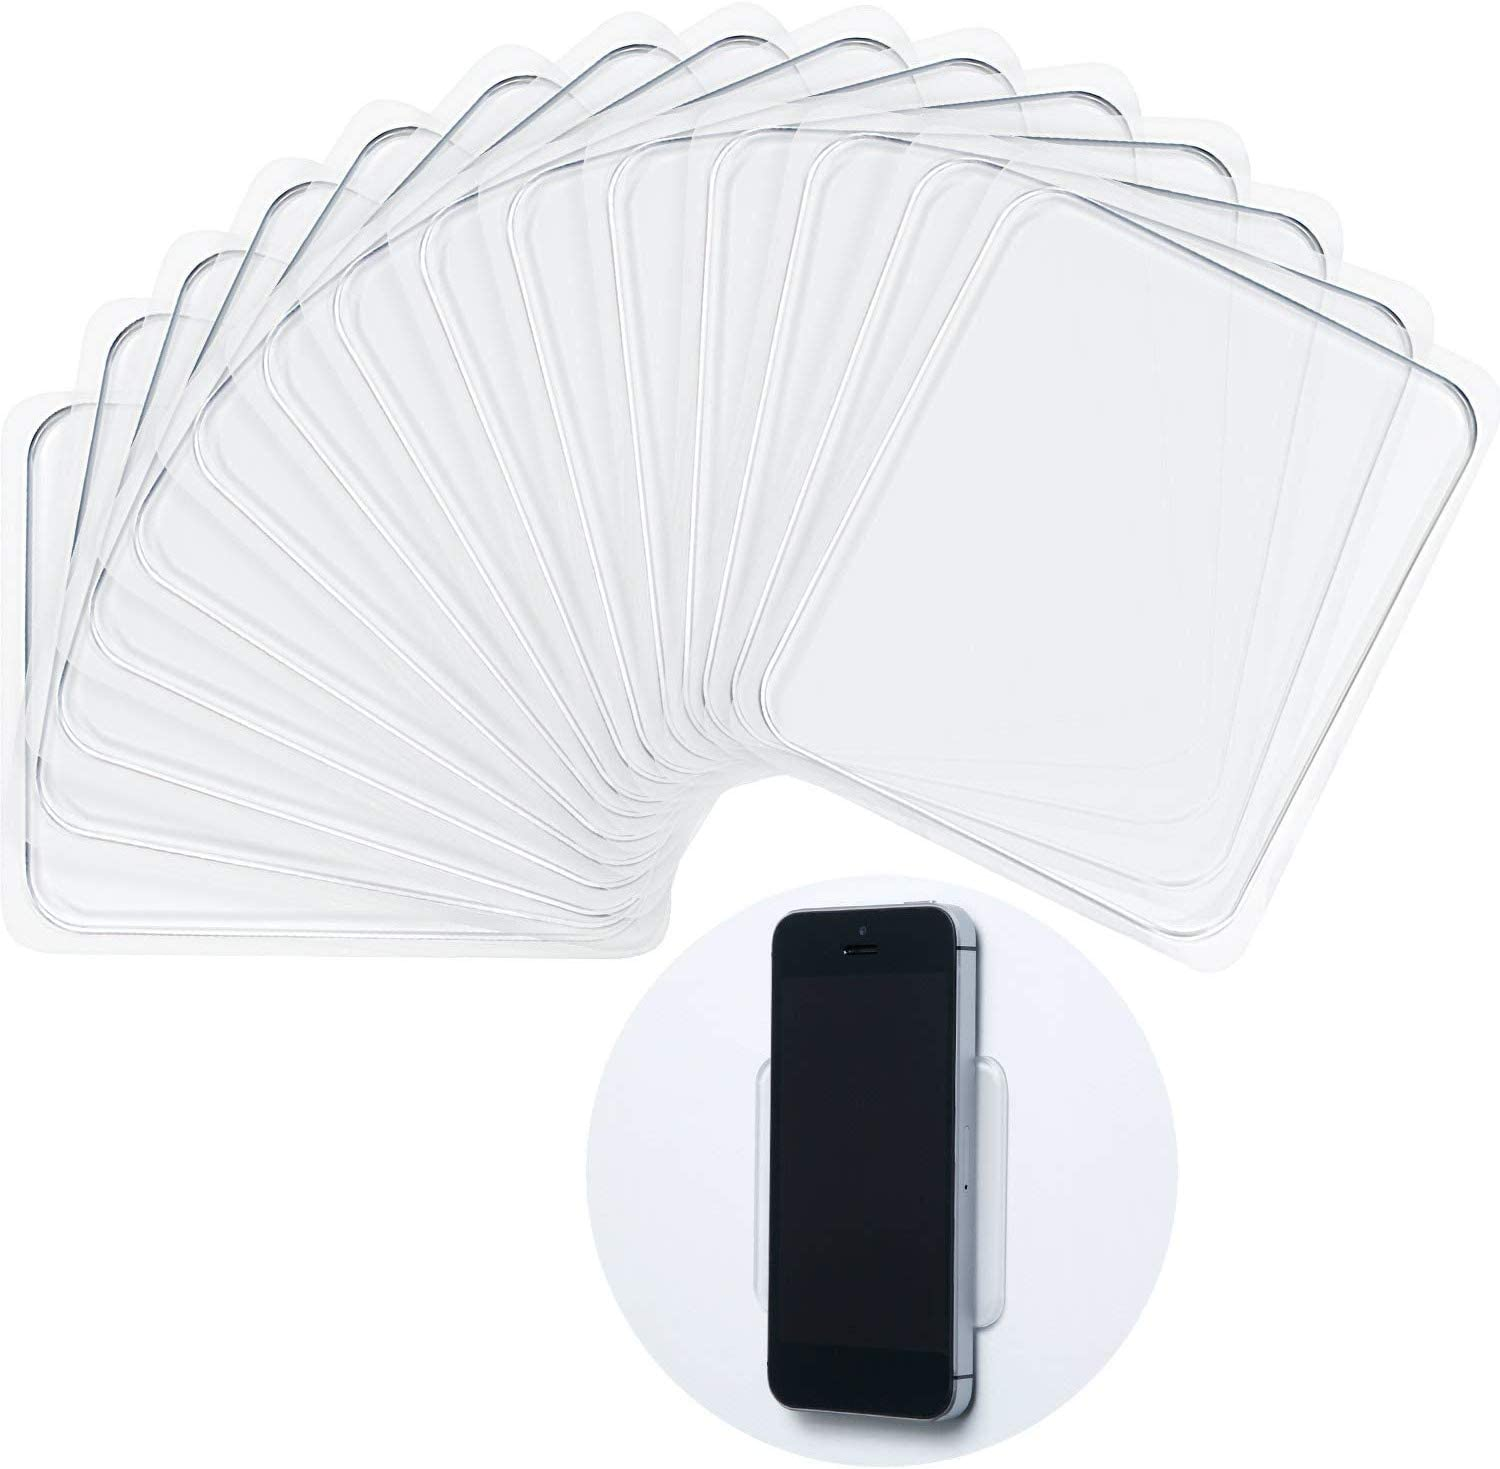 Hslife 20pcs Sticky Gel Pads Silicone Sticky Pads for Car, Home, Office, Cell Phone and Accessories (Transparent)